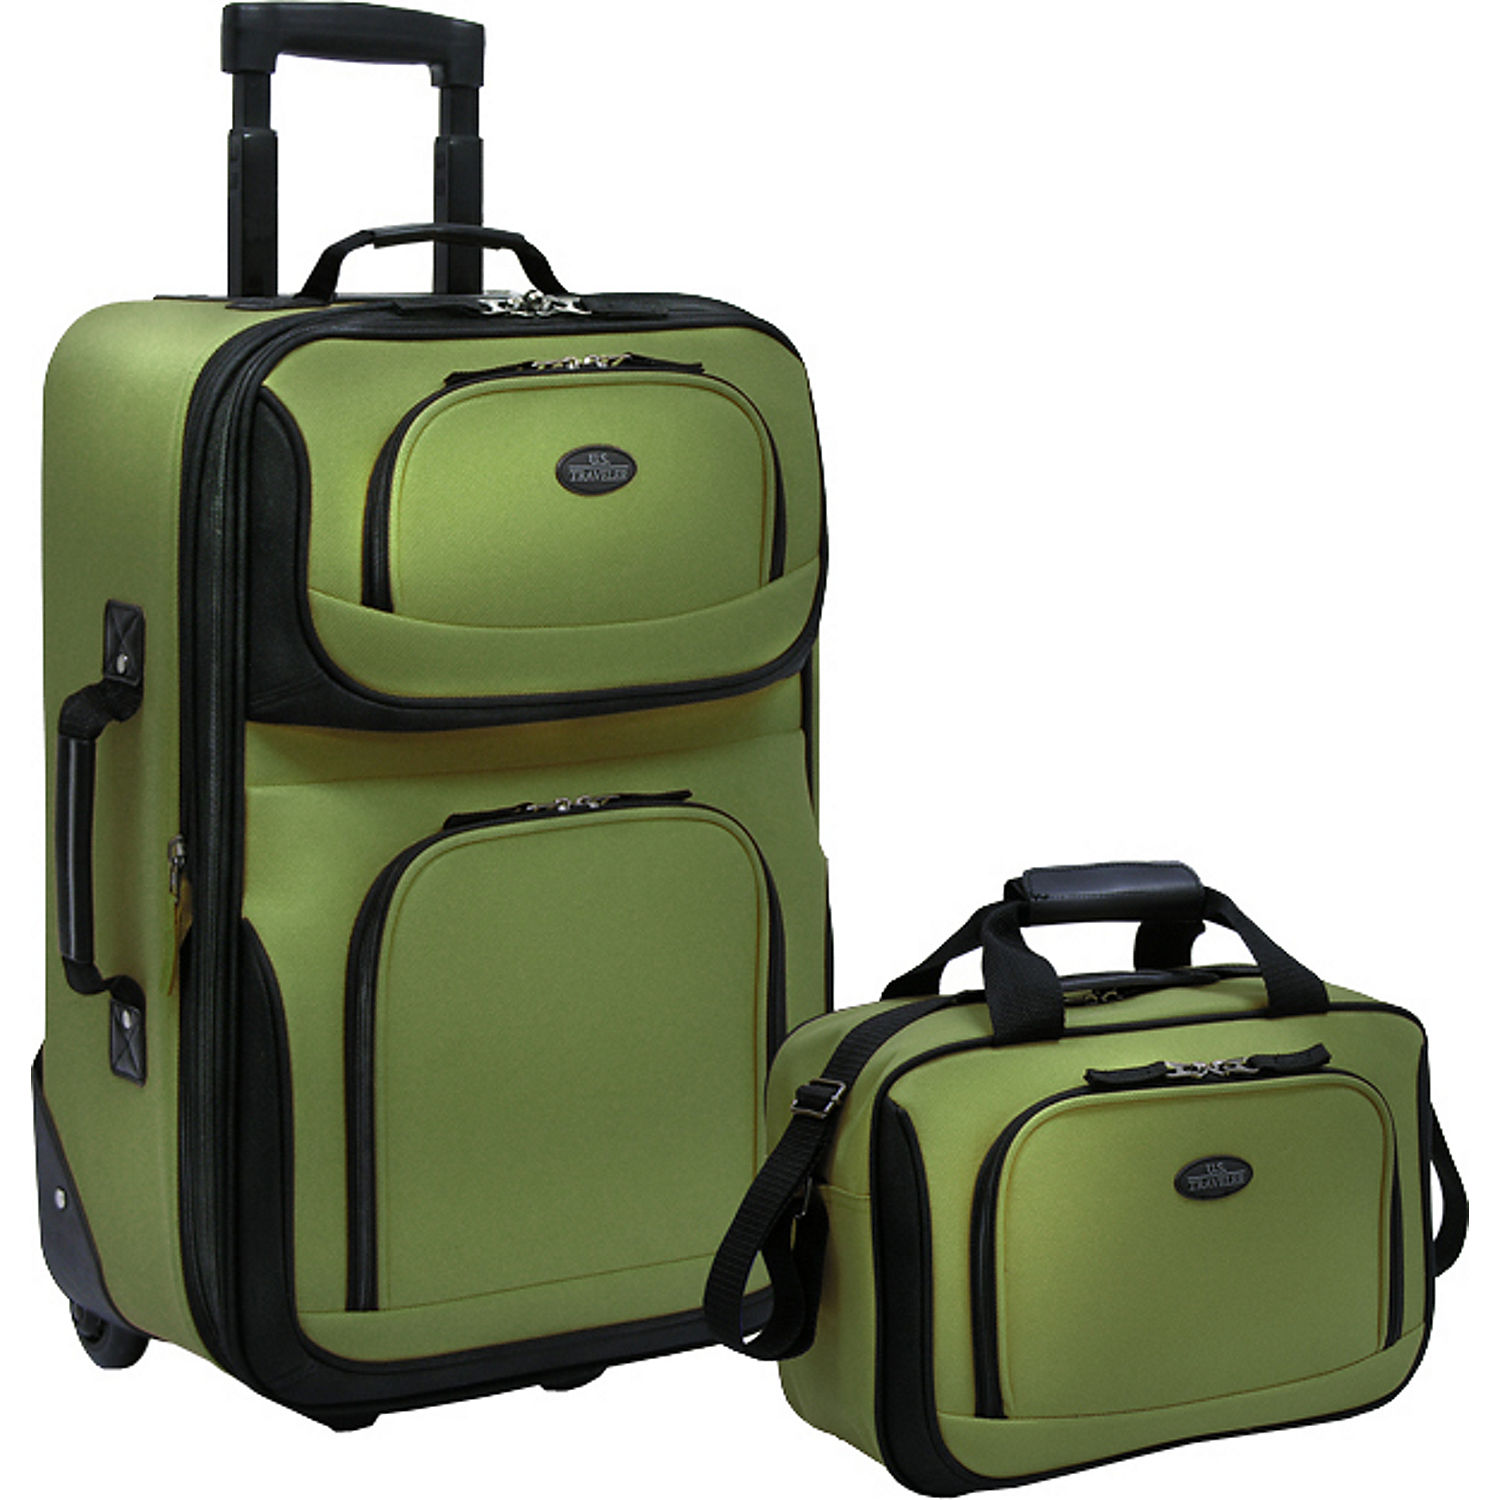 U.S. Traveler Rio Two Piece Expandable Carry-On Luggage Set, Green